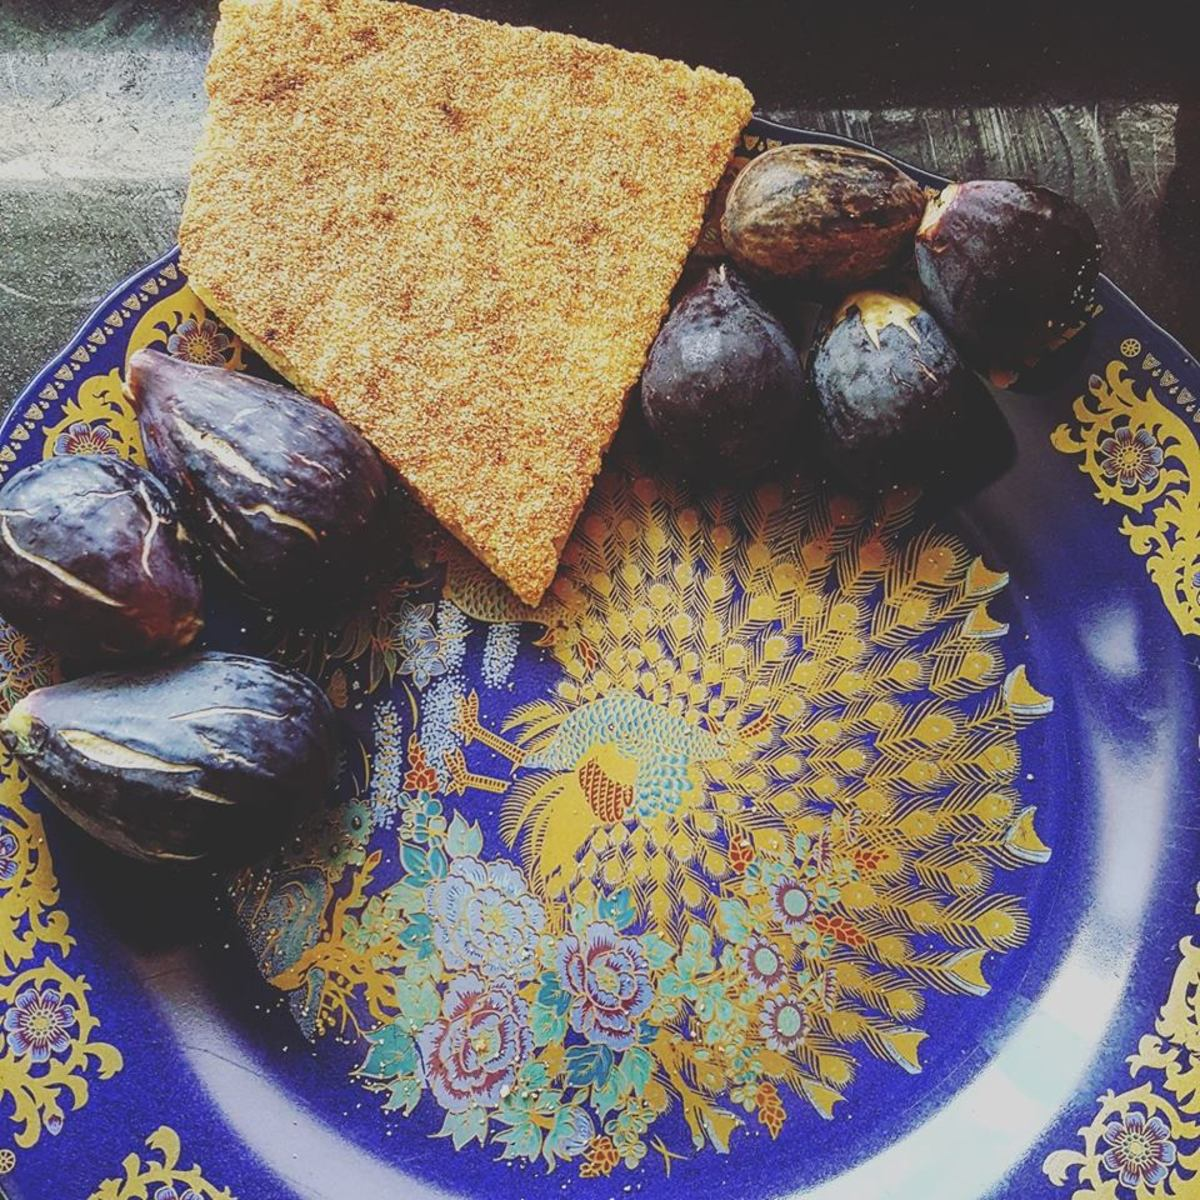 Fresh figs from Kenitra, Morocco, surround a slice of harsha.  The plate is adorned with a peacock - a common design found on many platters.